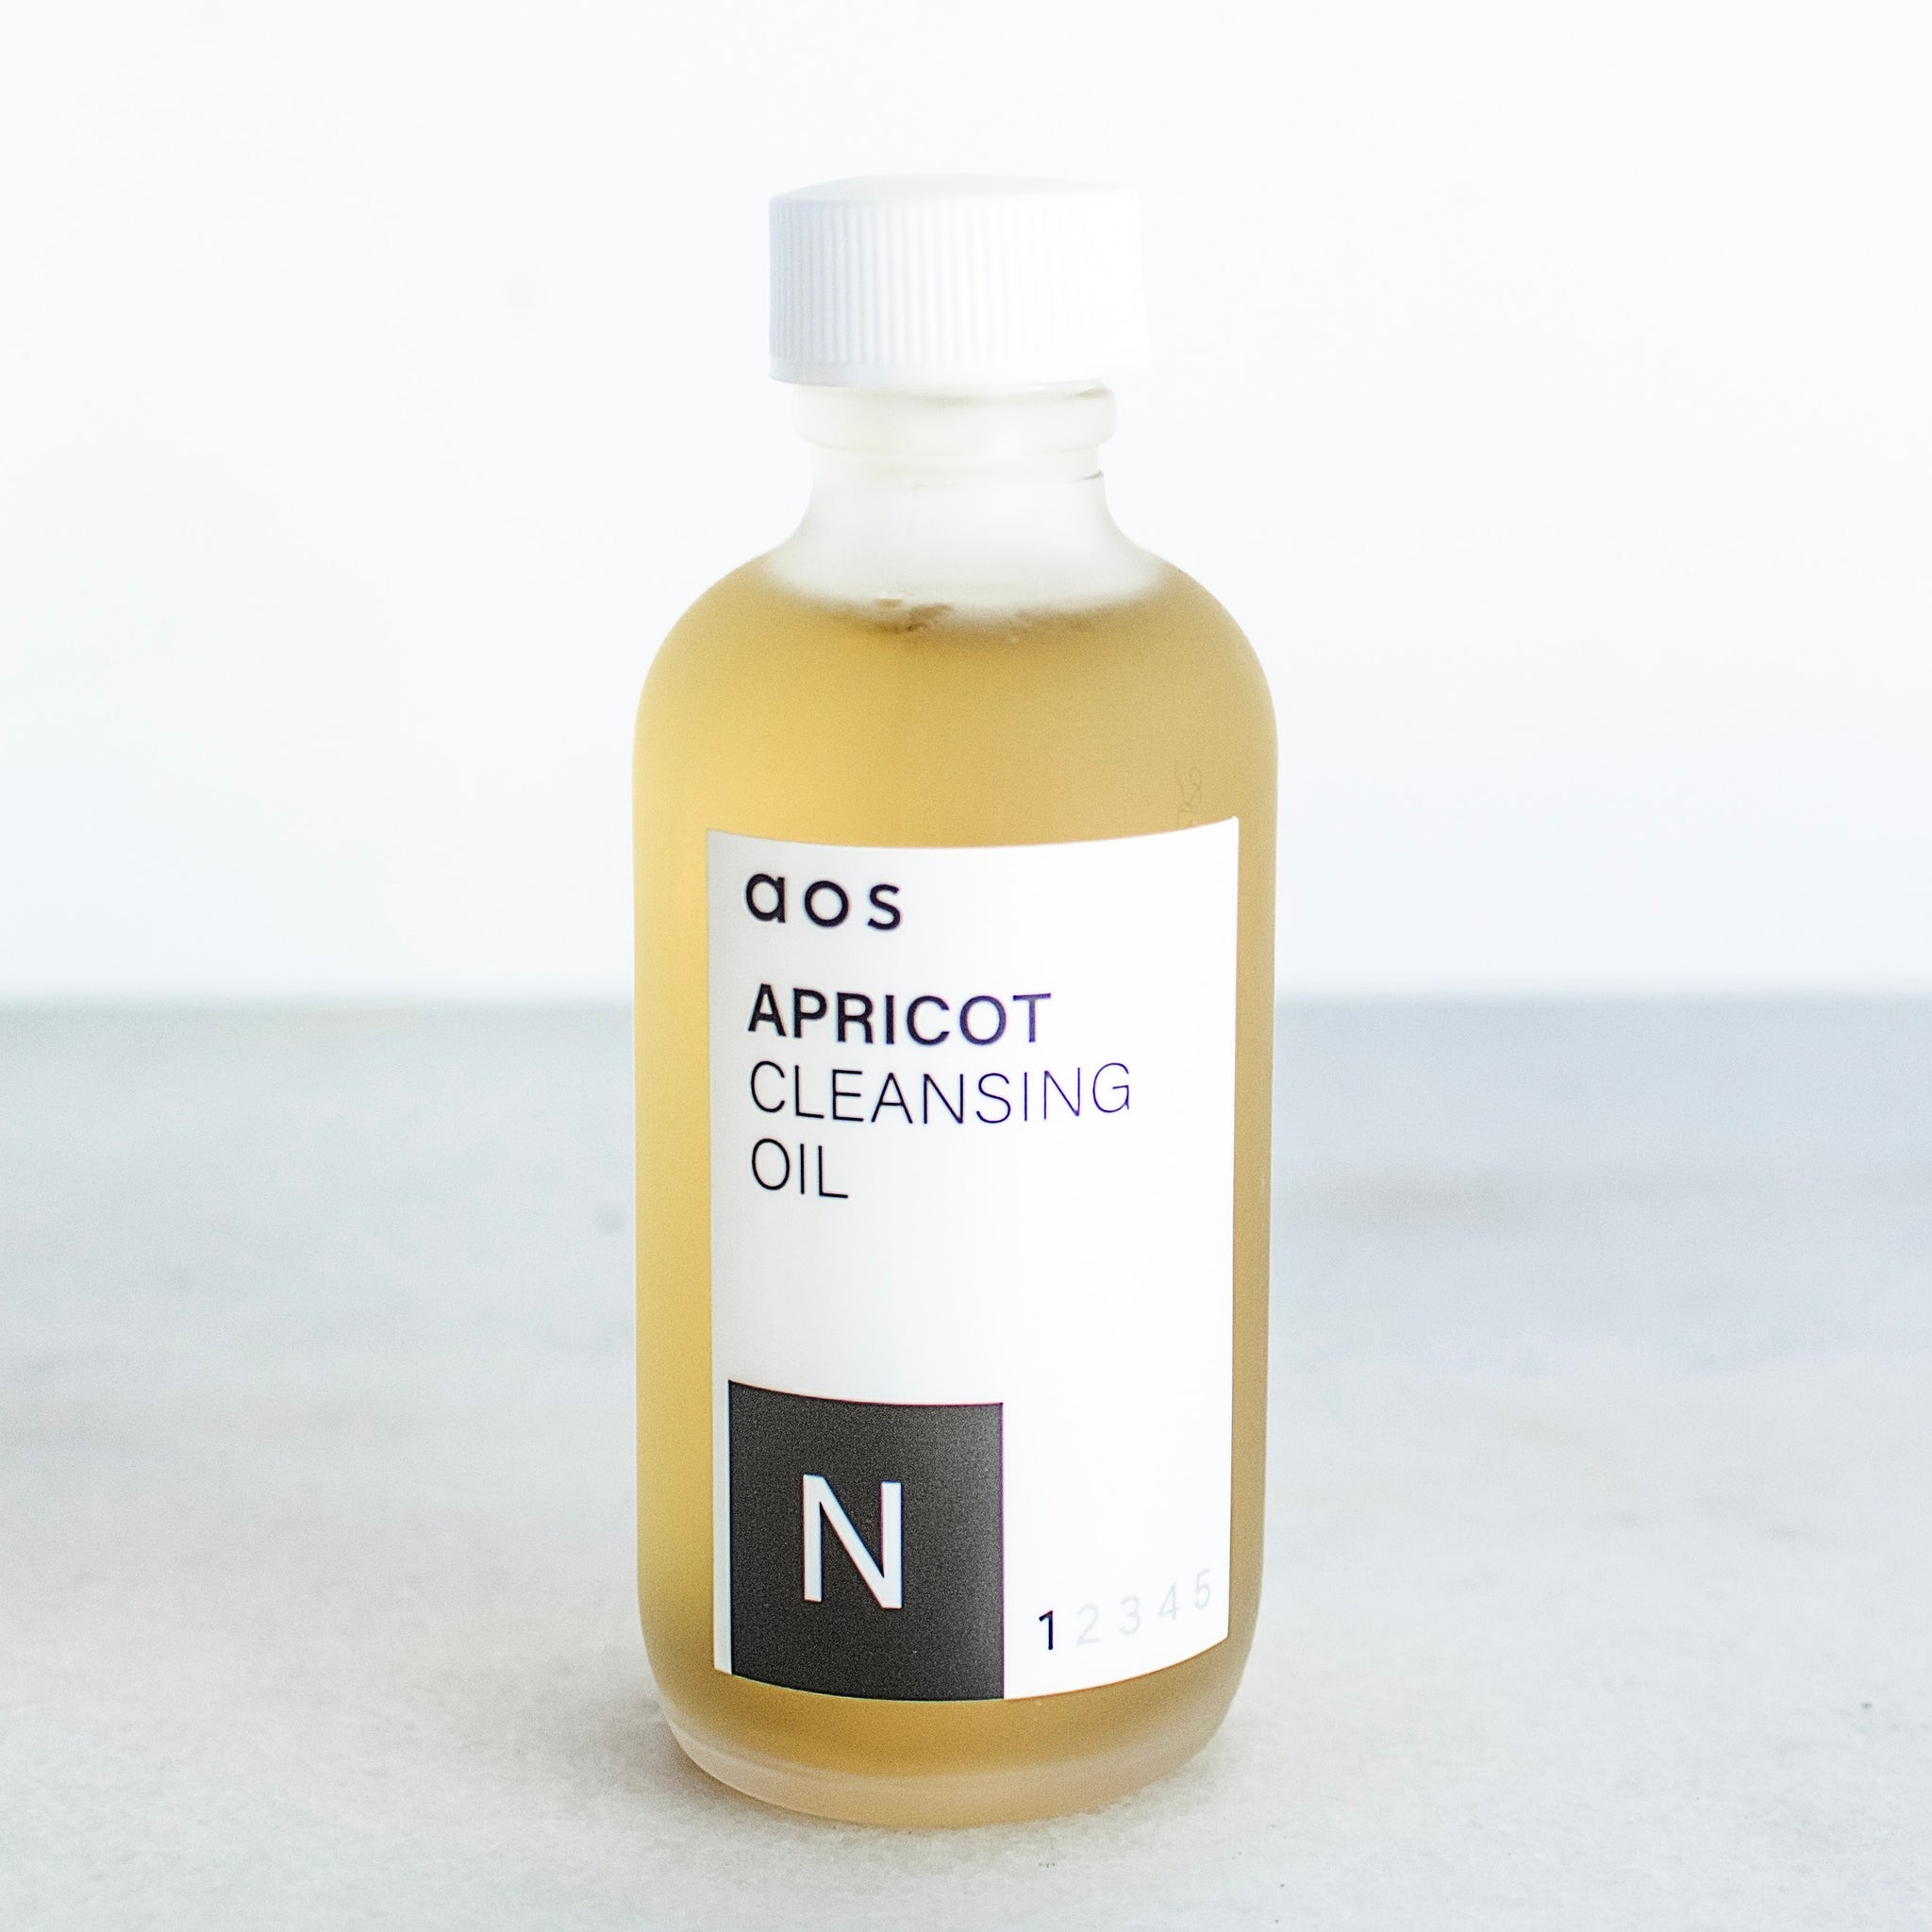 Apricot Cleansing Oil